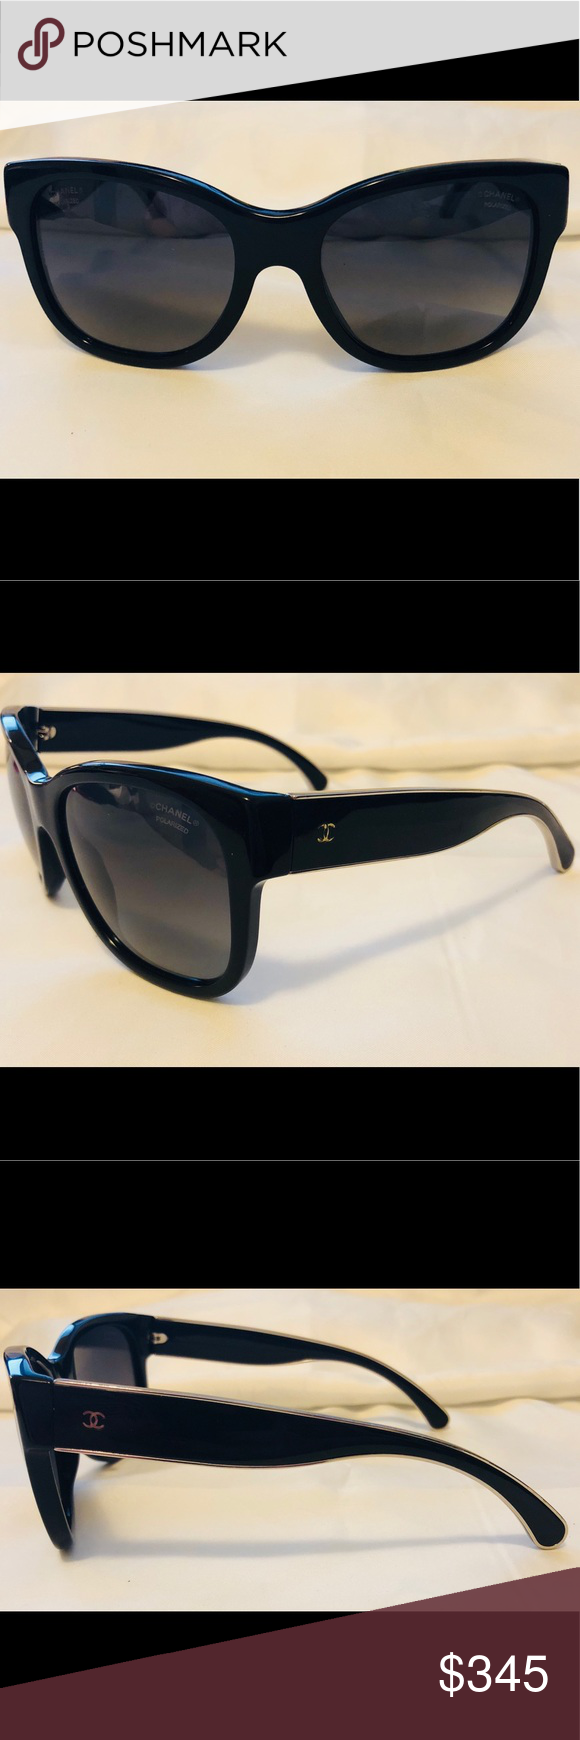 925f075bbc7ab Polarized Chanel 5270 Sunglasses - Black   Gold Frame is a glossy black    is accented